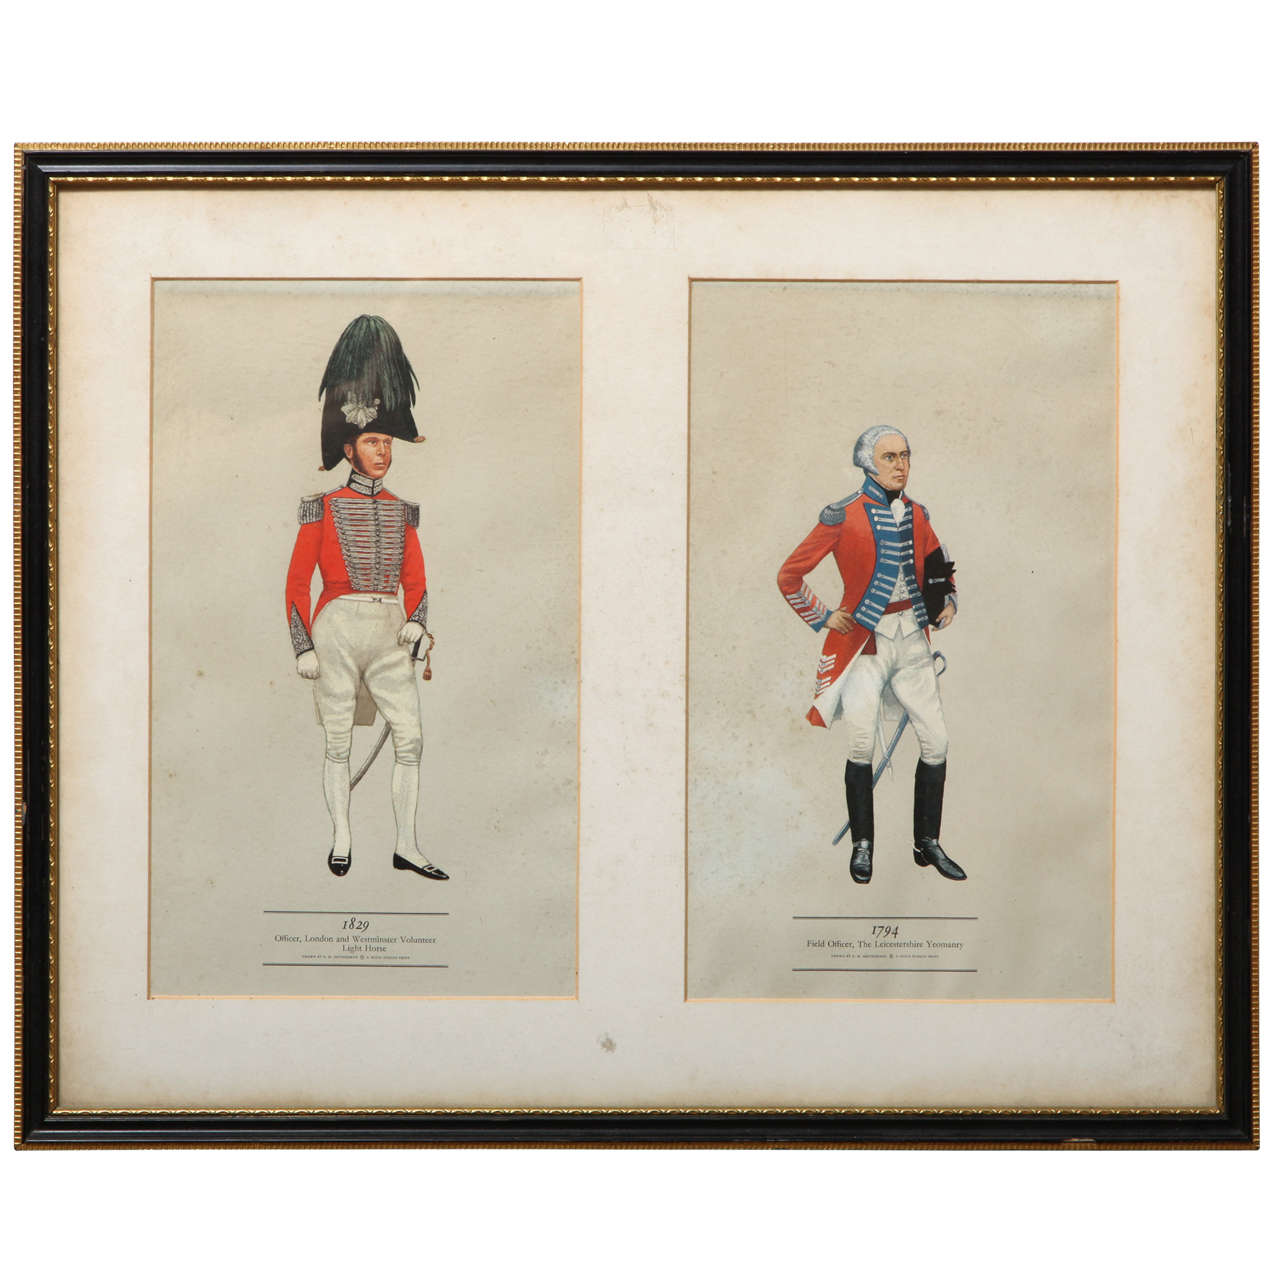 19th Century Coloured Print in a Hogarth Frame